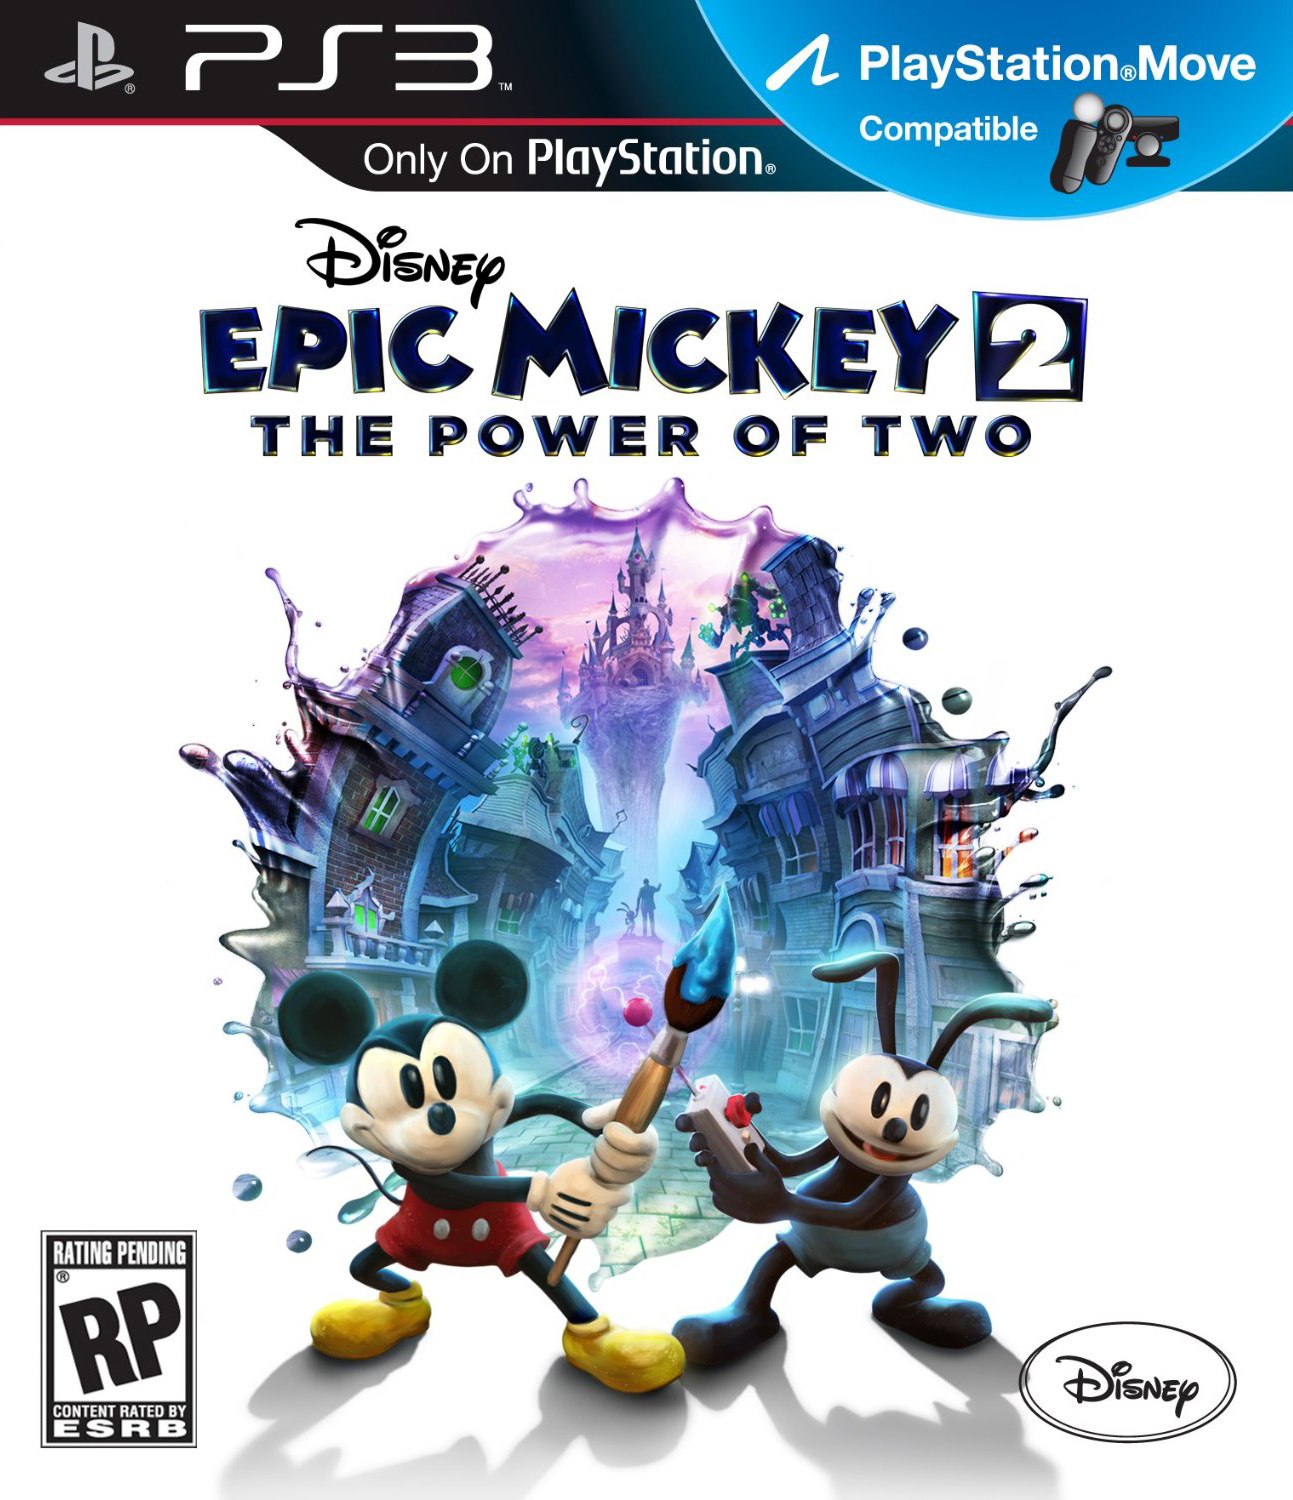 Box art - Disney Epic Mickey 2: The Power of Two